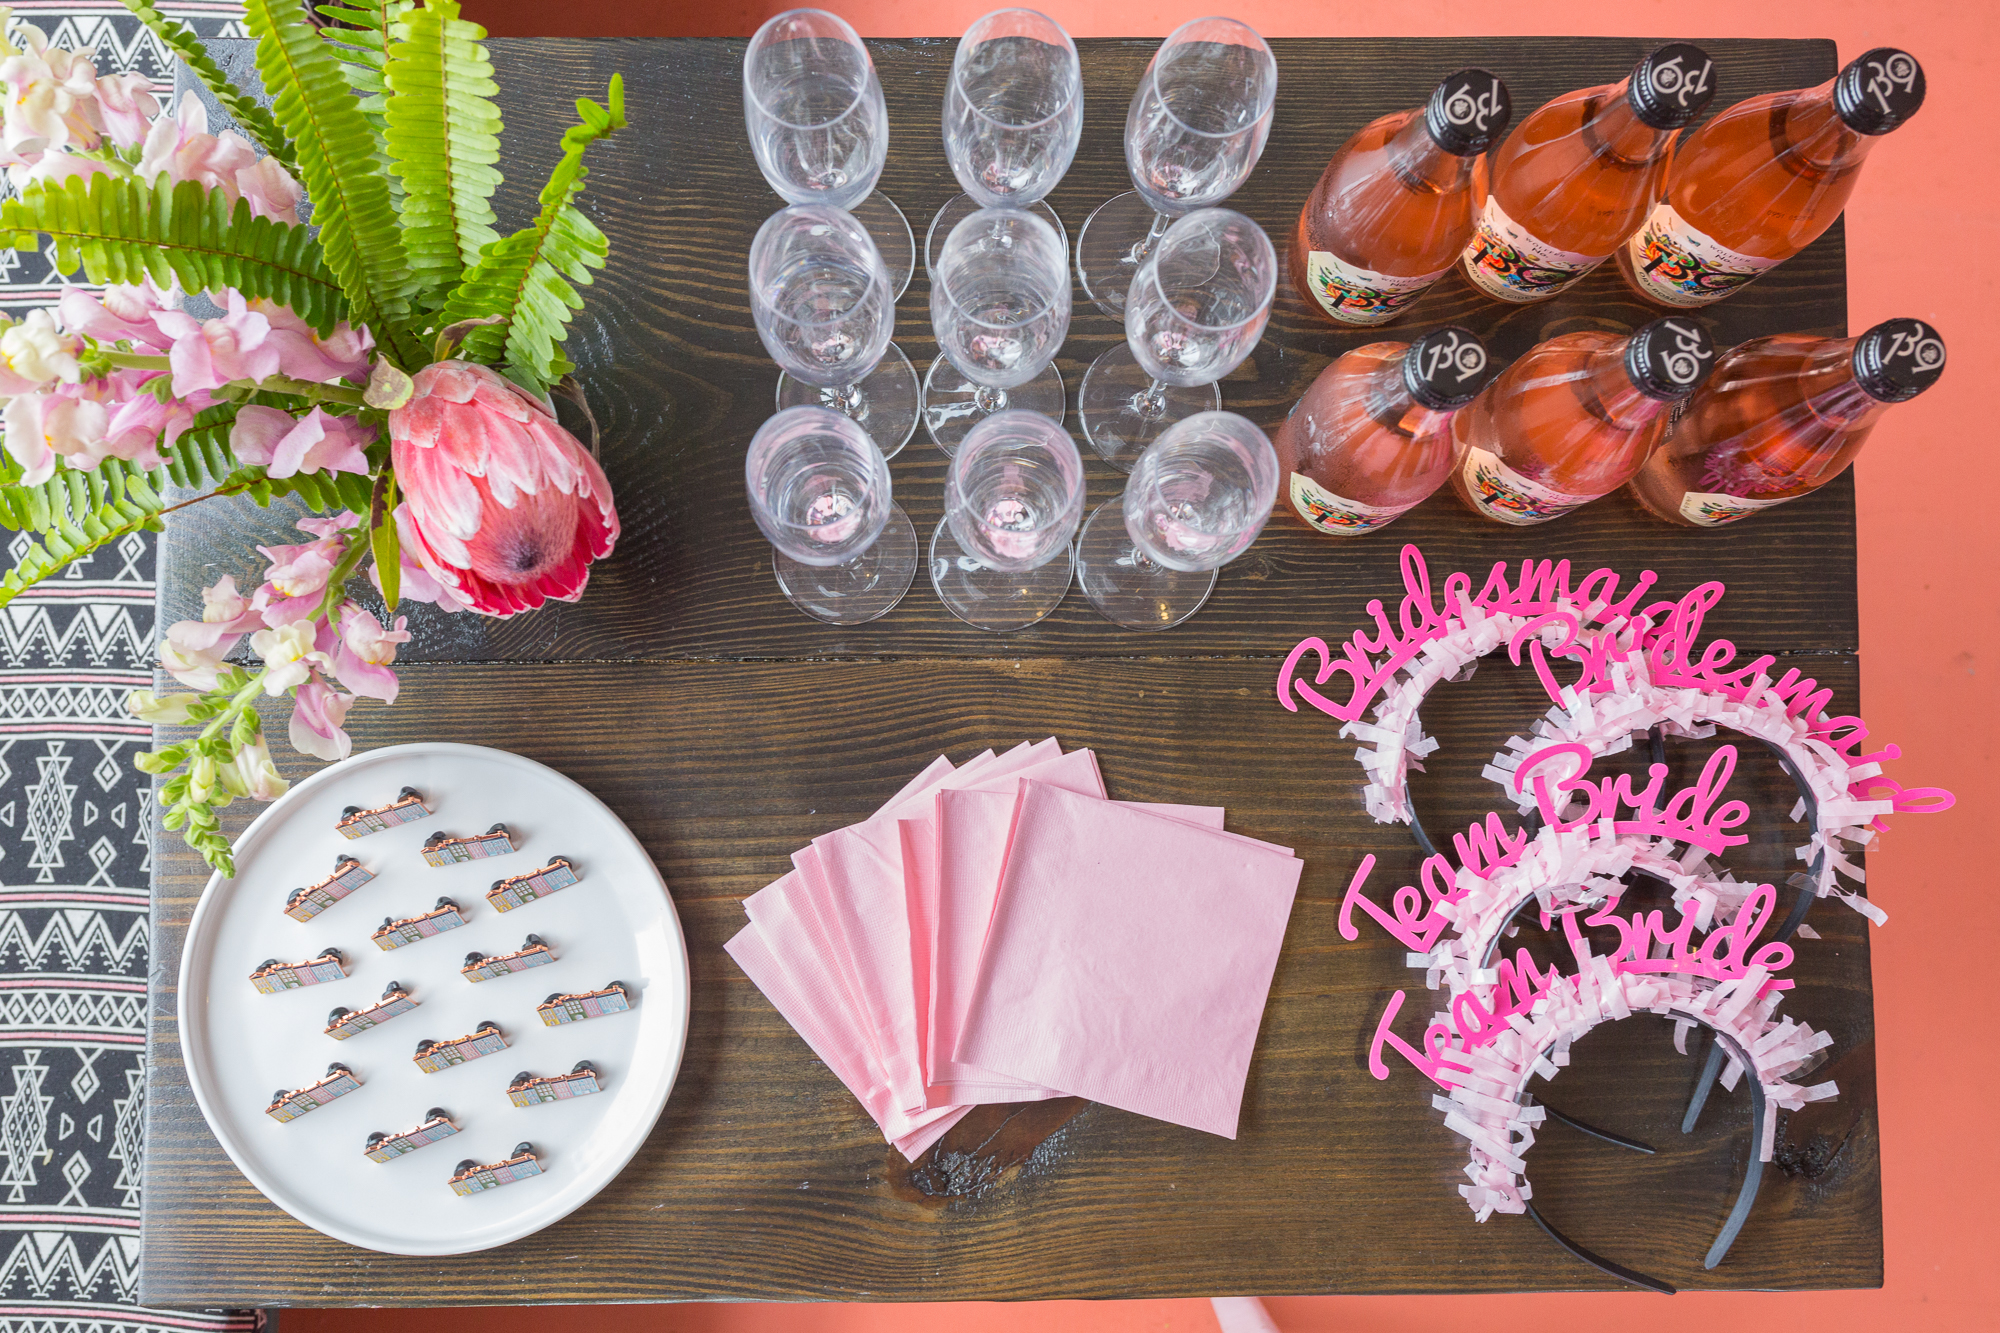 where to buy charleston bachelorette supplies